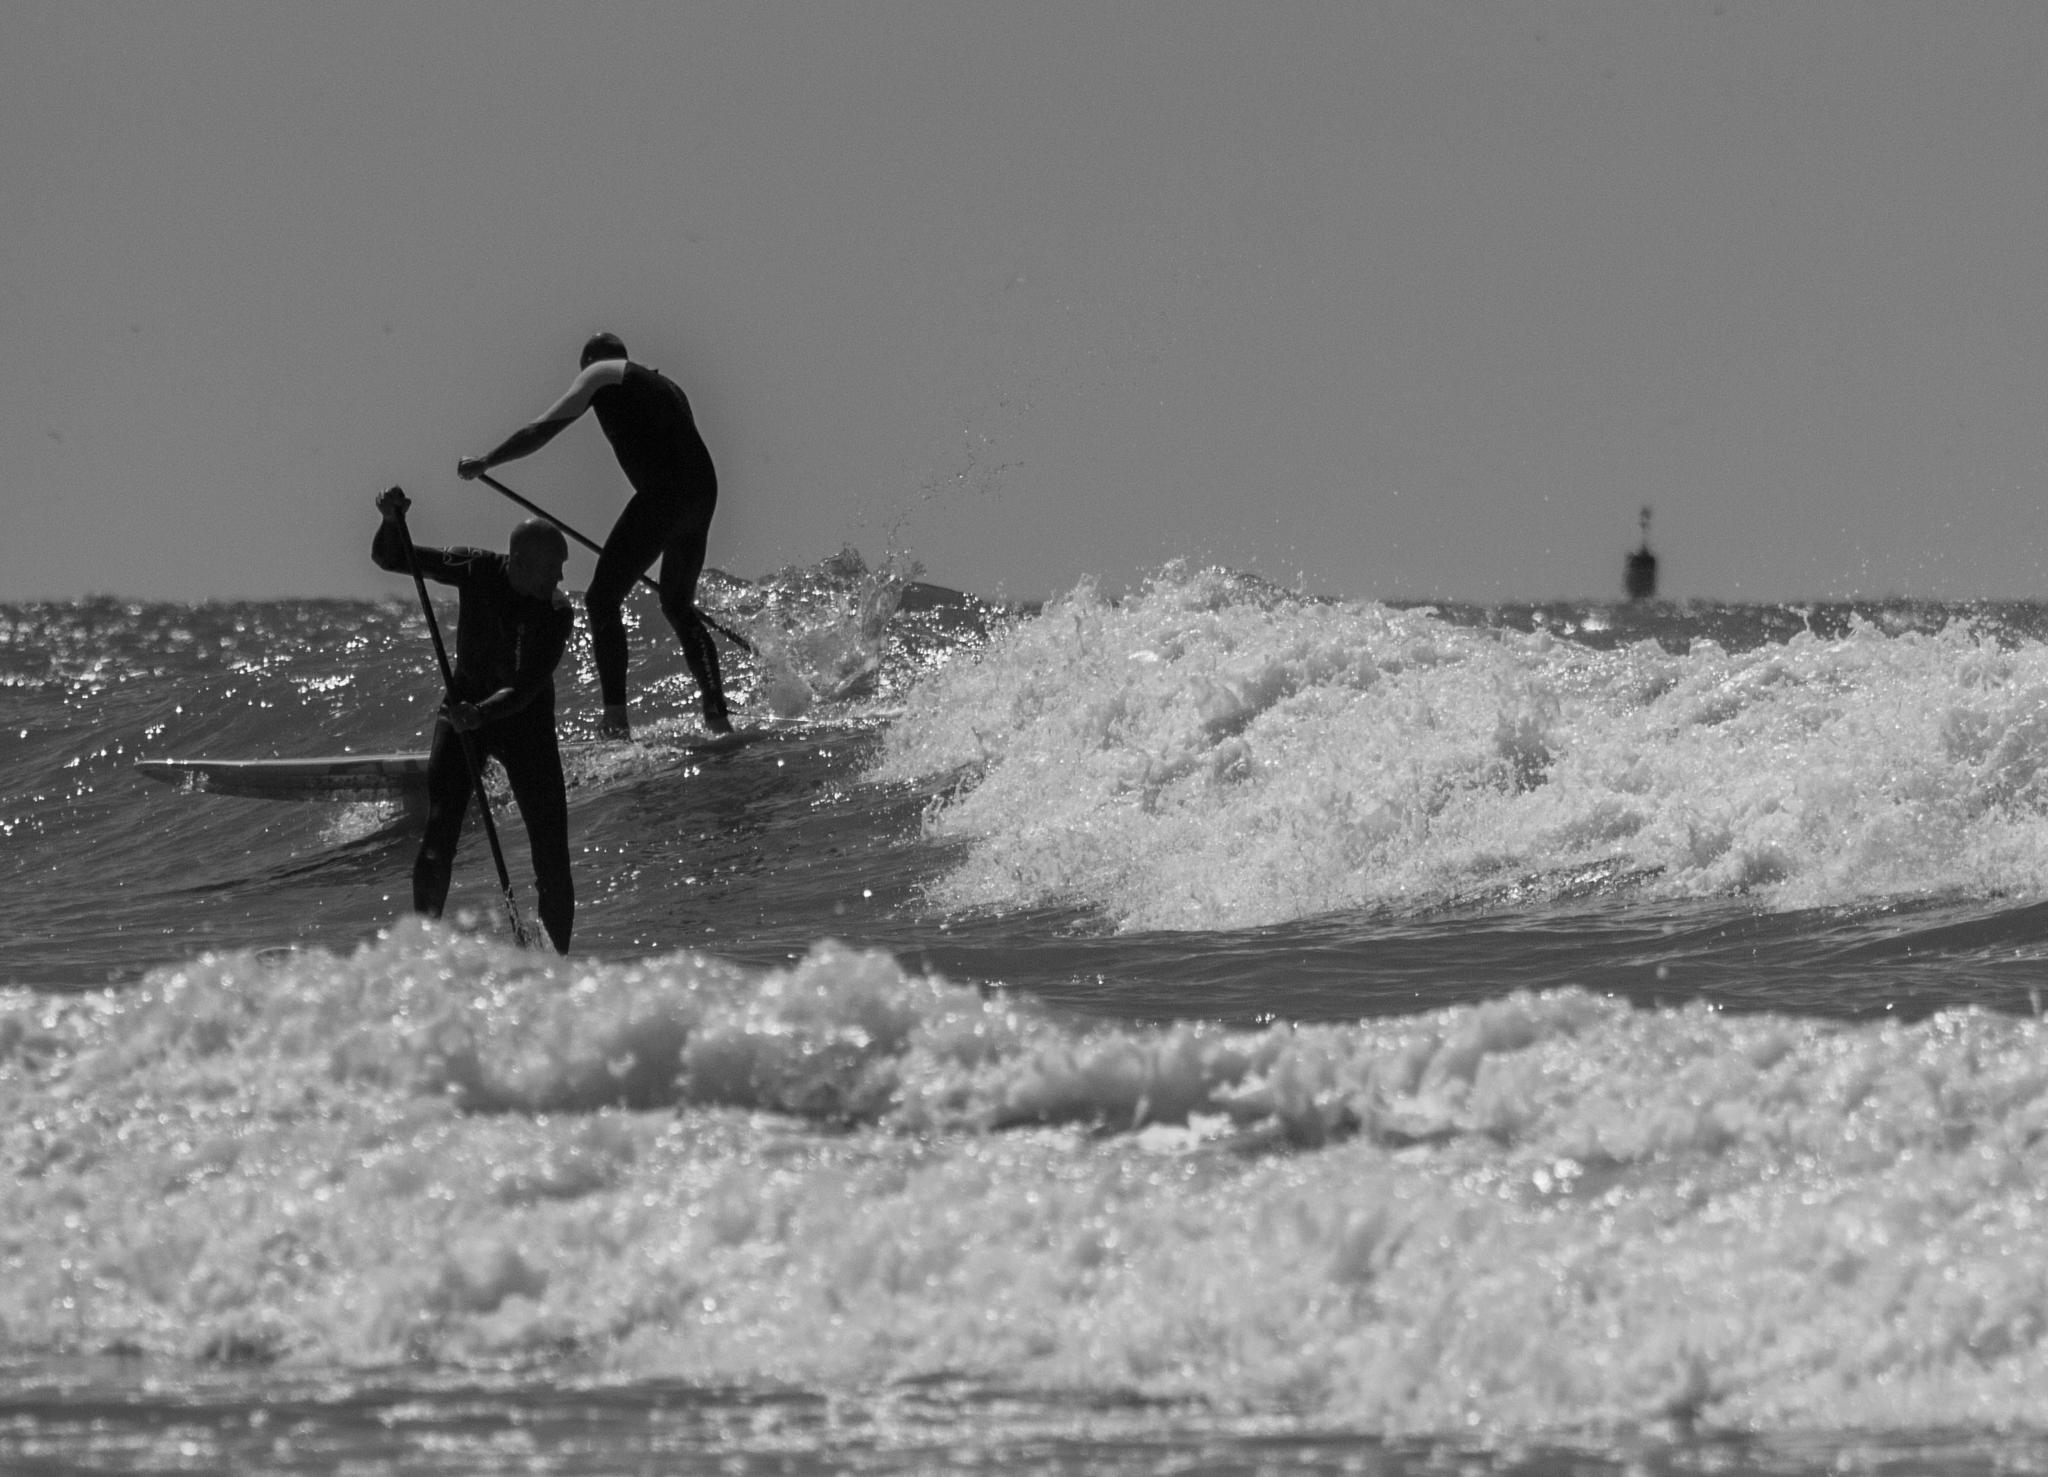 TWO SURFERS by dbWaterman